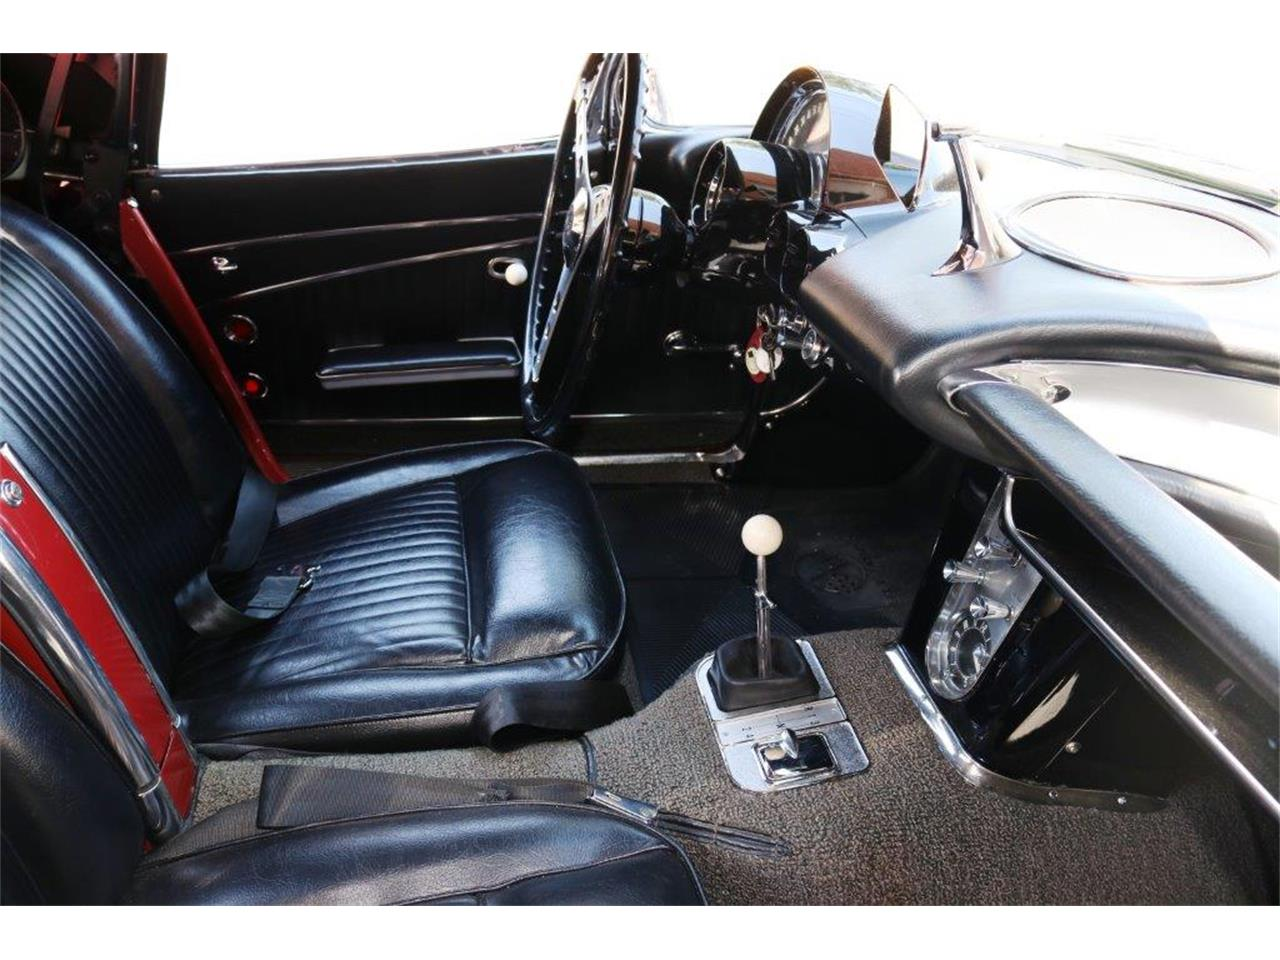 Large Picture of Classic 1962 Chevrolet Corvette located in New Jersey - $99,000.00 Offered by a Private Seller - OMBK